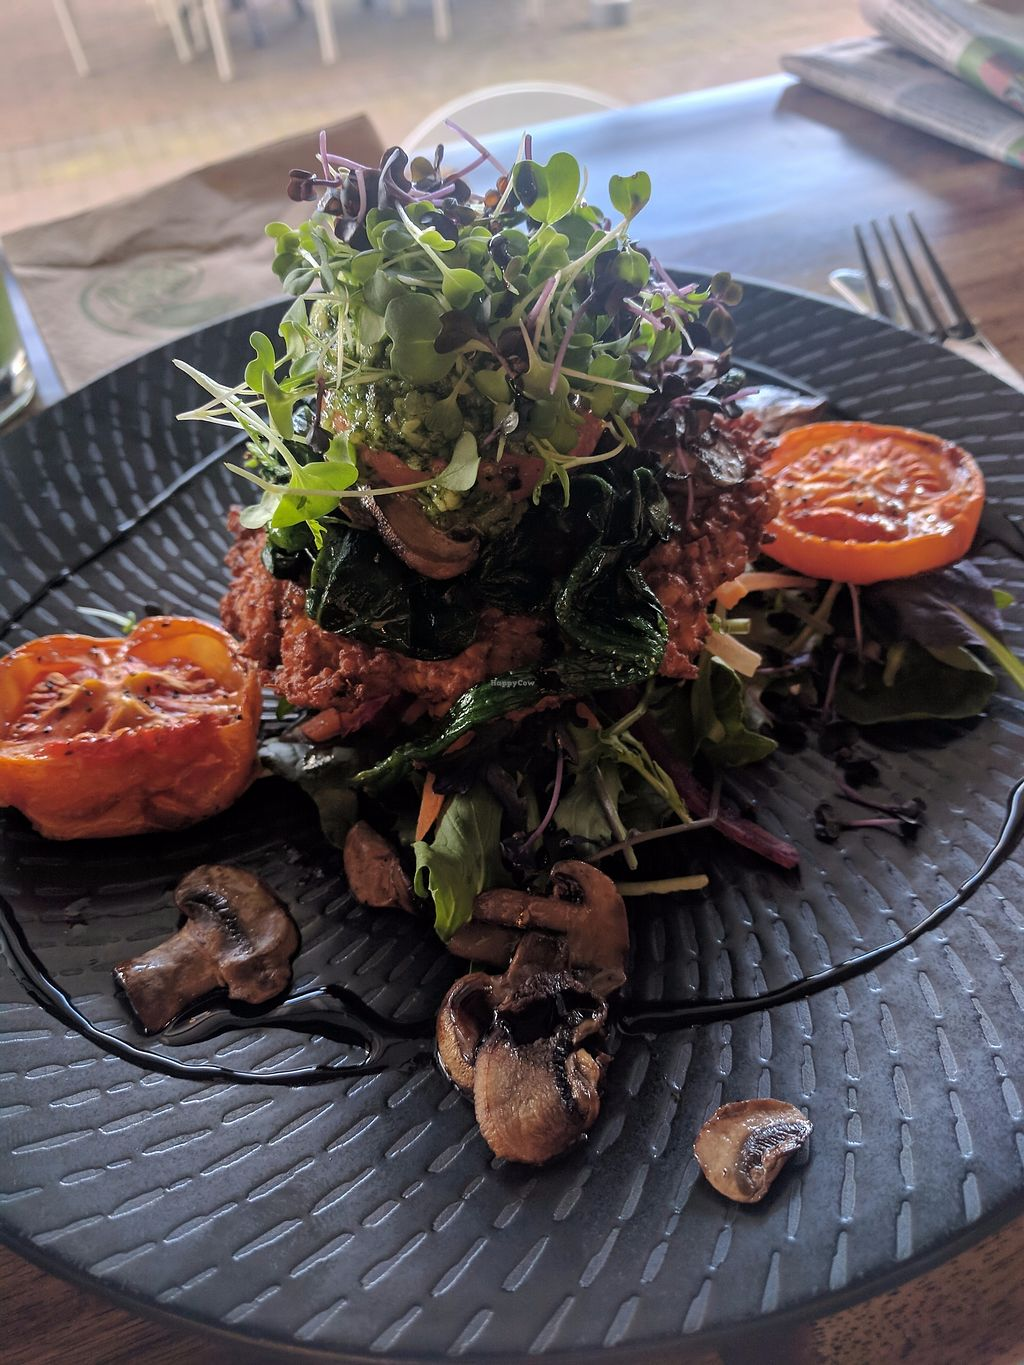 "Photo of Cafe Baku  by <a href=""/members/profile/DaisyGould"">DaisyGould</a> <br/>Vegan vege stack (vege stack with eggs removed) at Cafe Baku, Taupo <br/> September 13, 2017  - <a href='/contact/abuse/image/96352/303943'>Report</a>"